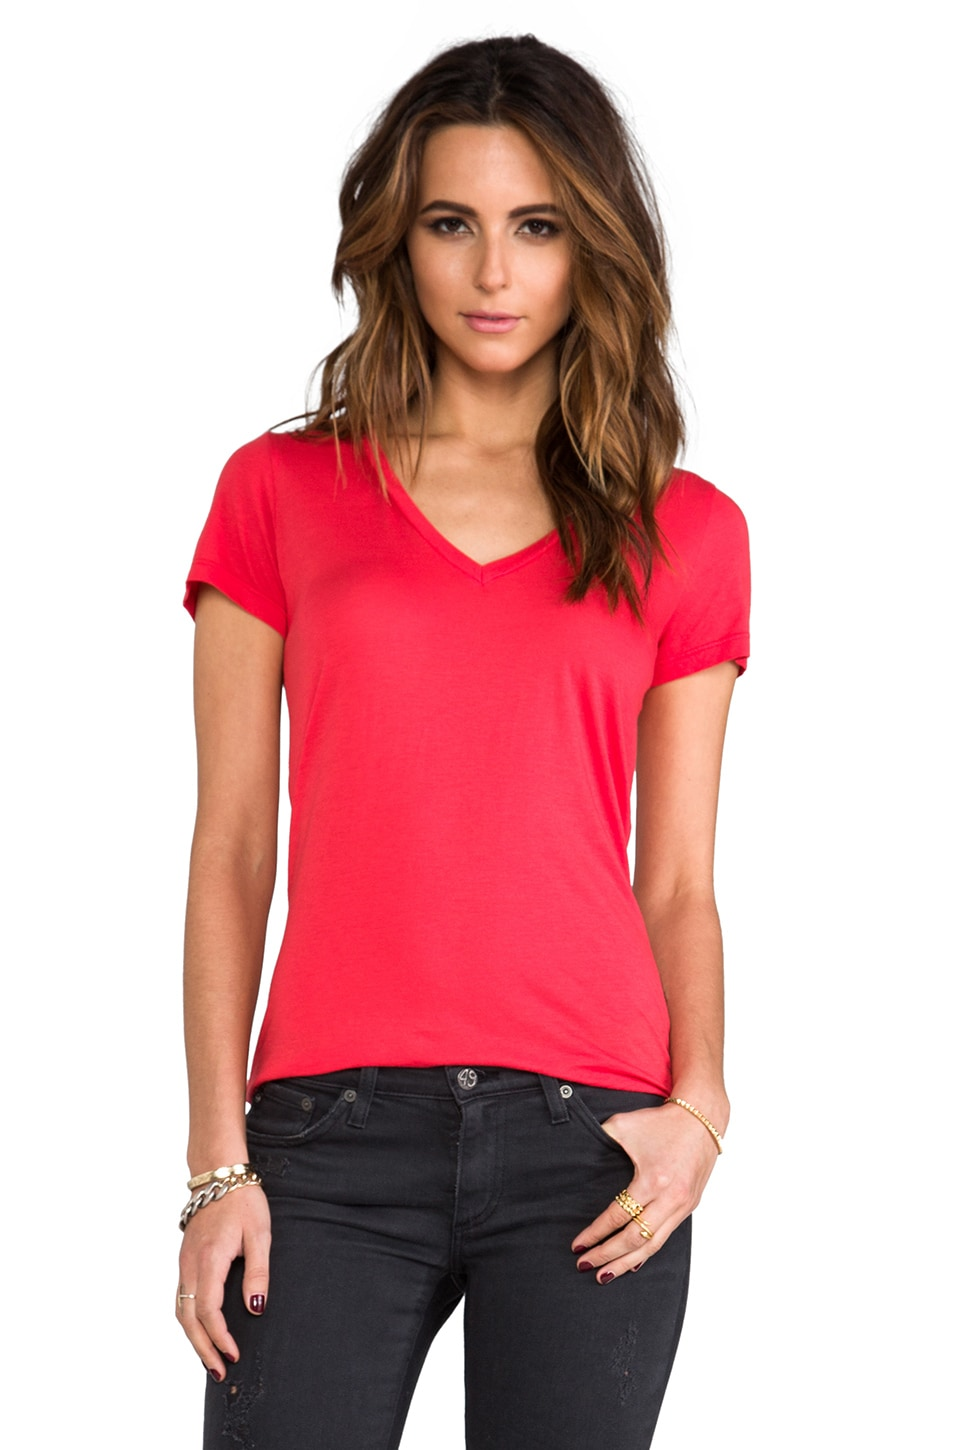 Splendid Very Light Jersey Tee in Roja